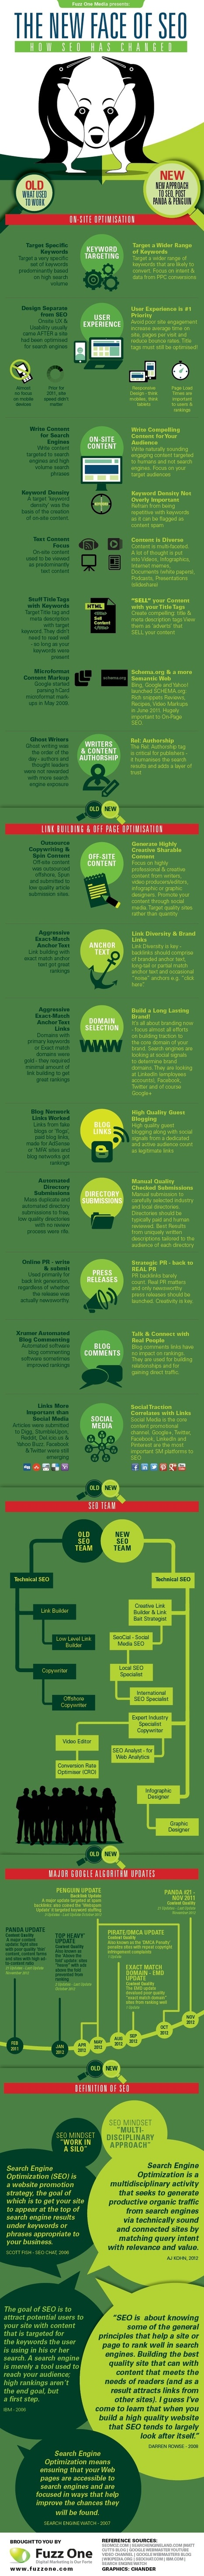 The New Face of SEO: Content Creation Comes First [Infographic] | Content Curation and Management | Scoop.it